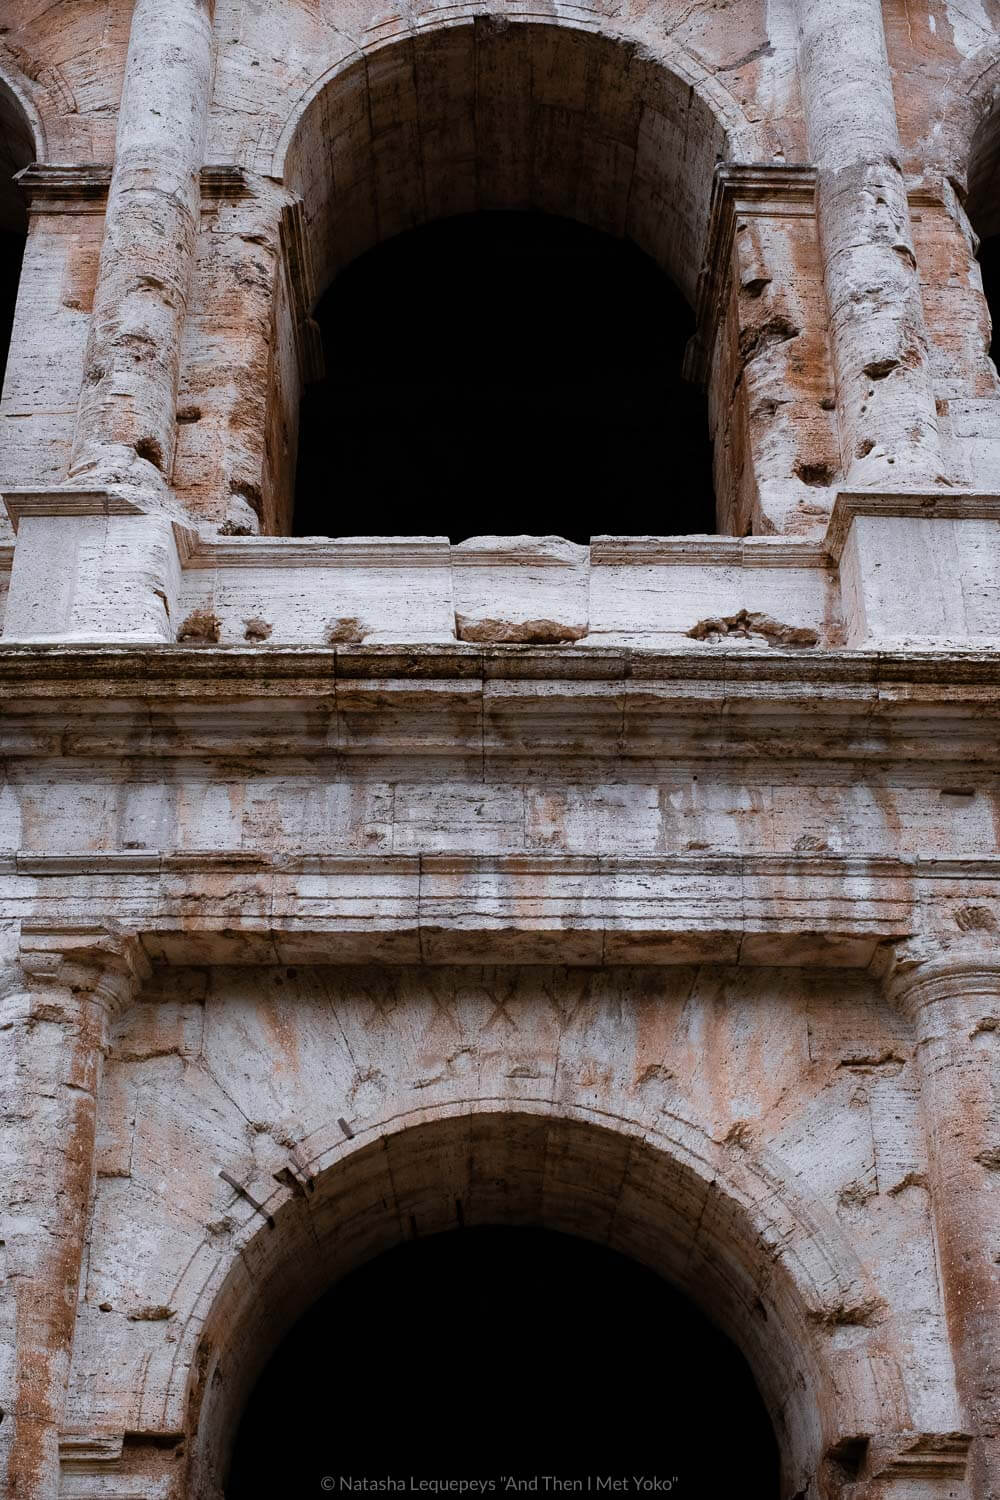 """Arches in the Colosseum in Rome, Italy. Travel photography and guide by © Natasha Lequepeys for """"And Then I Met Yoko"""". #rome #italy #travelblog #travelphotography"""